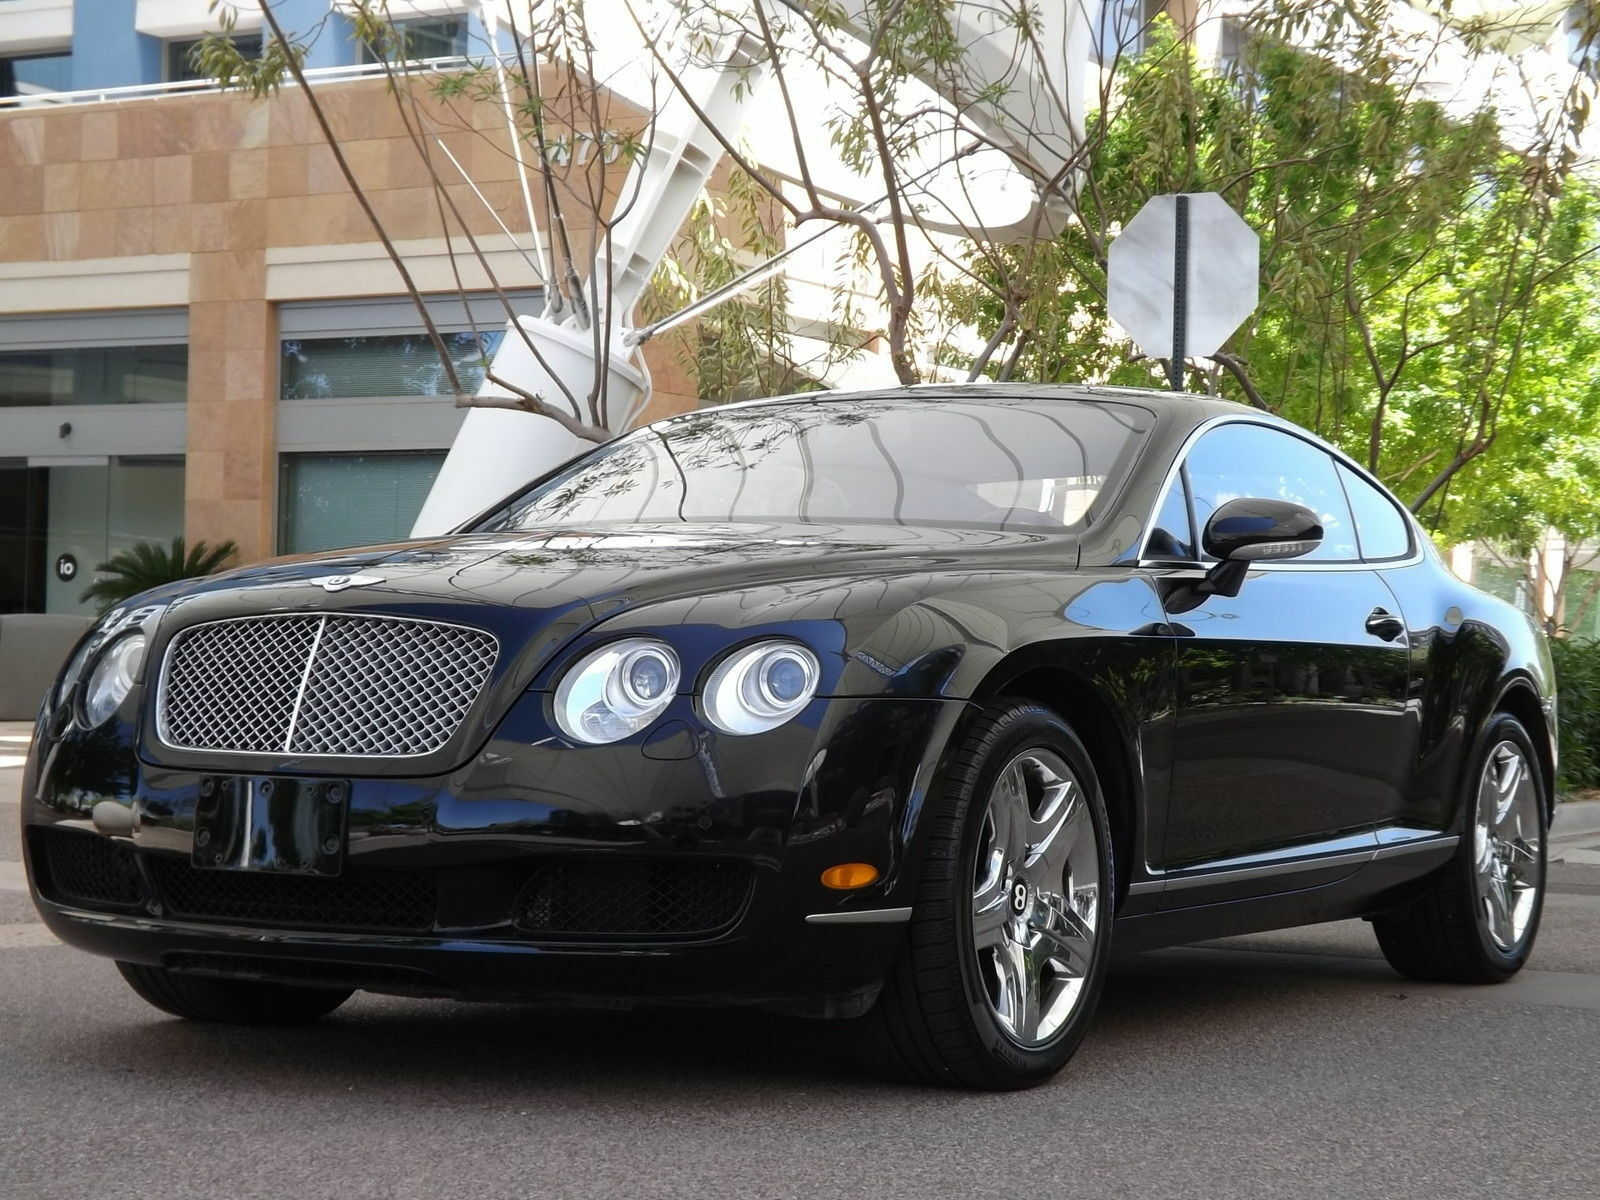 Top 10 Affordable Luxury Cars  eBay